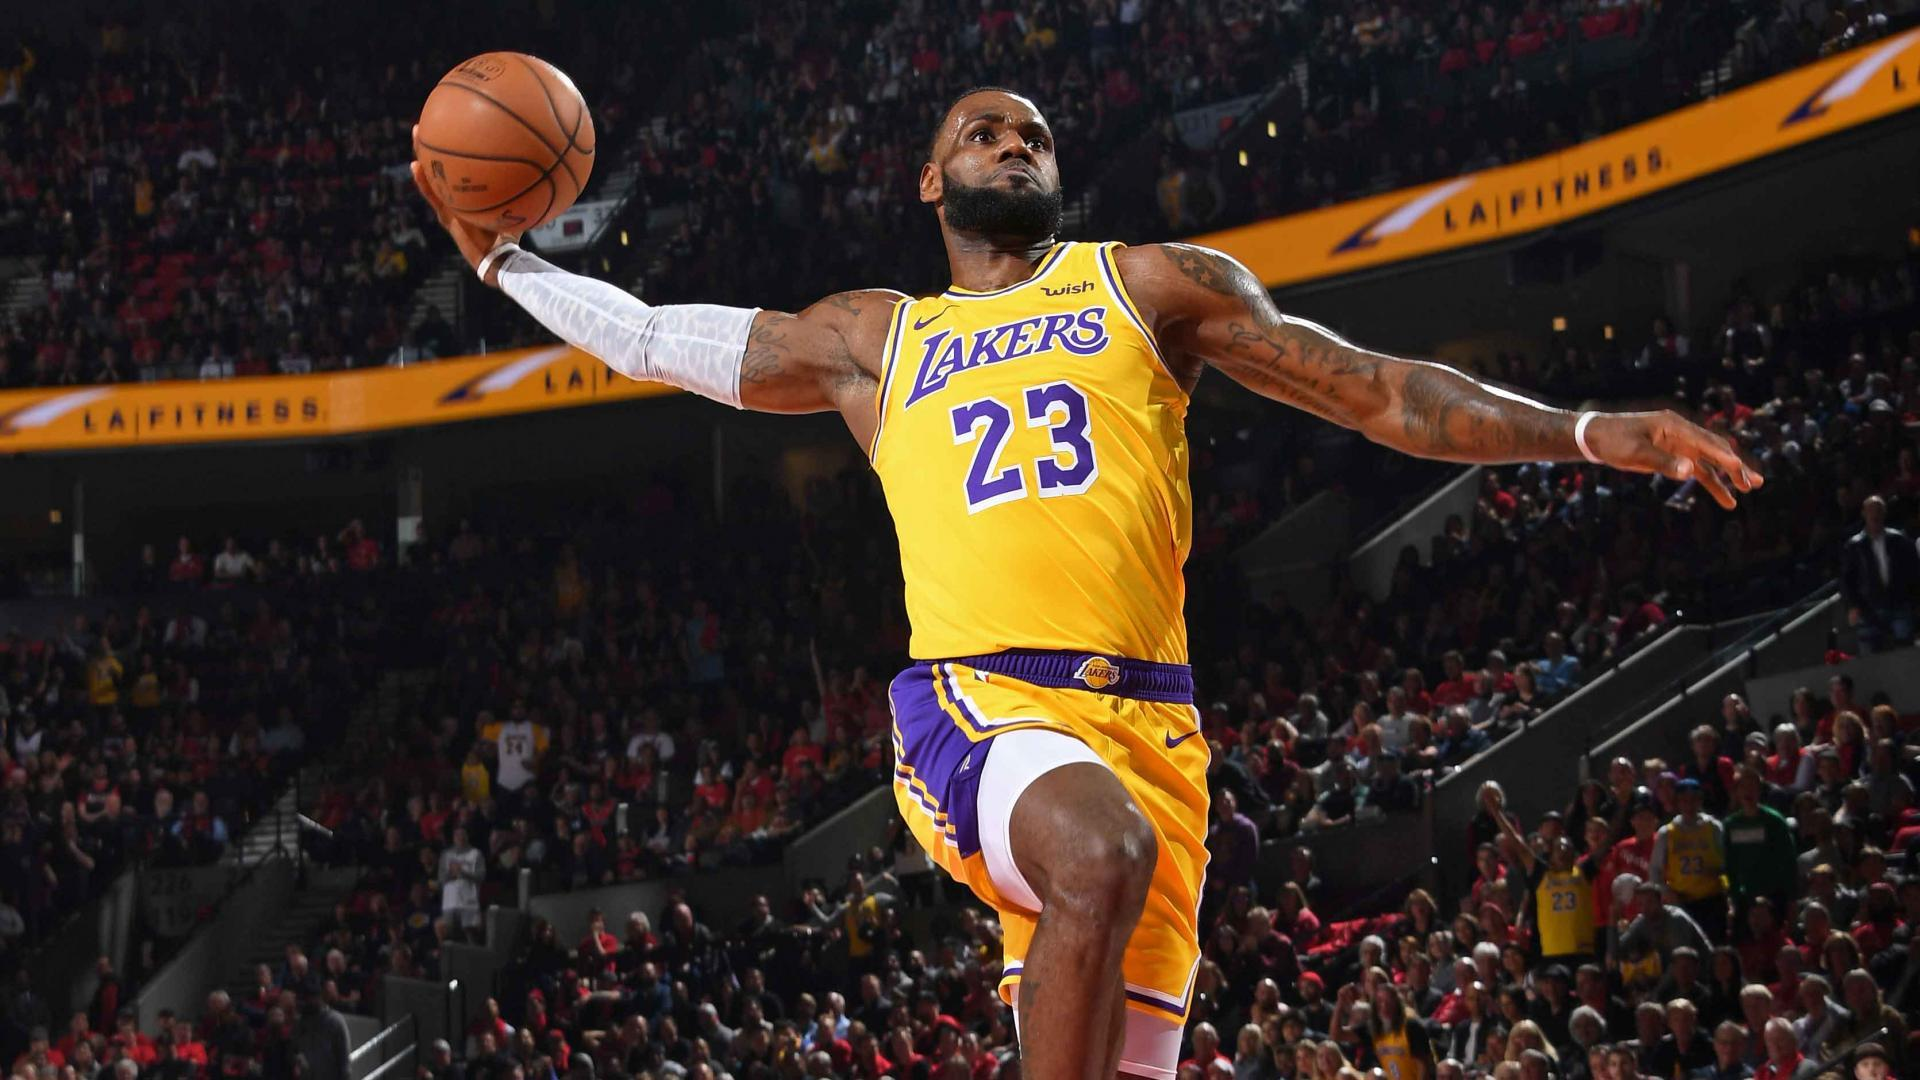 8a3f49e6cb22 LeBron James Debut As A Laker